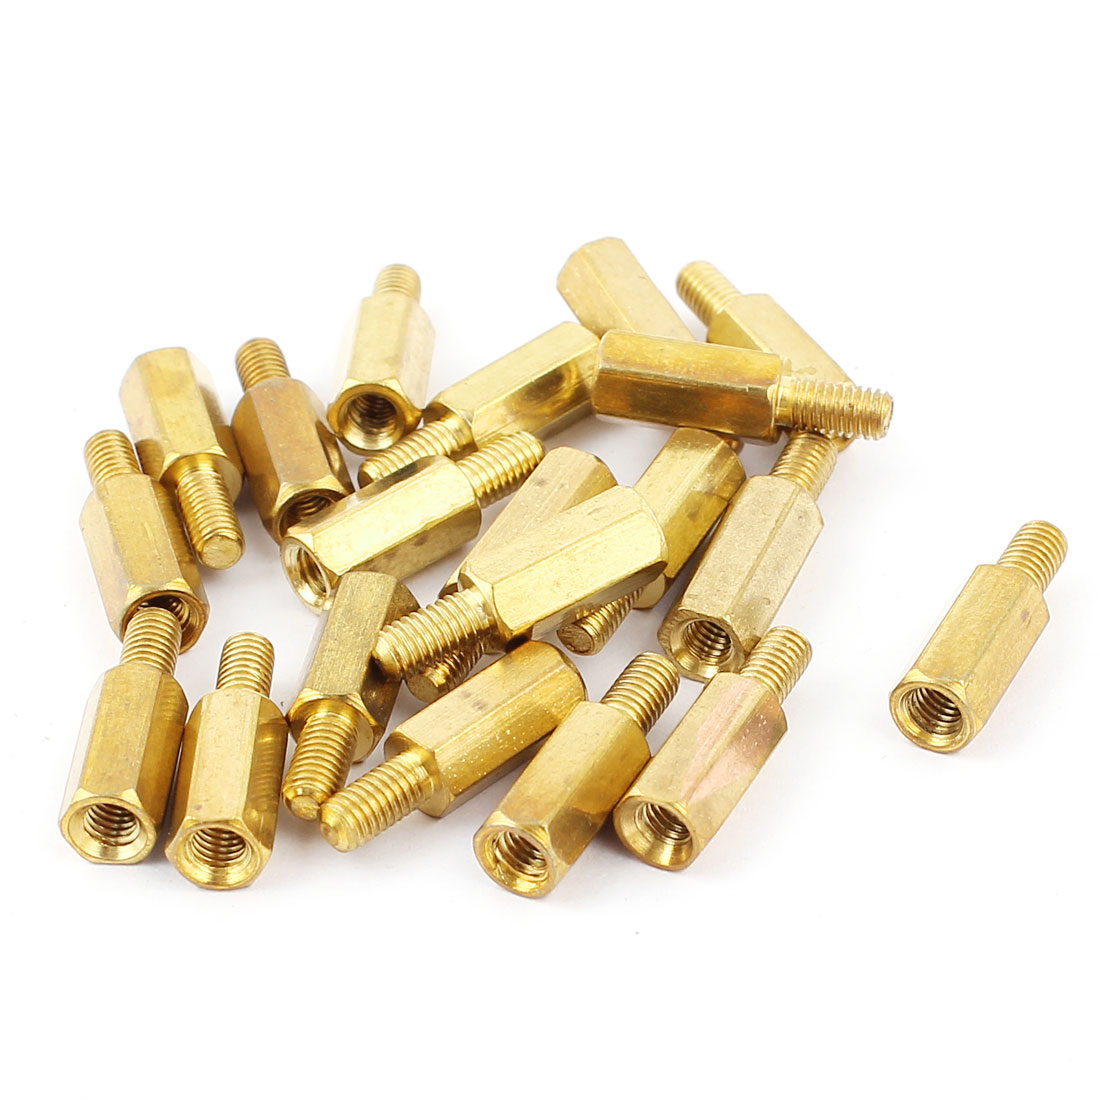 20Pcs M3 10mm+6mm Male to Female Brass Hex Standoff Spacers Pillars Nuts for PCB Motherboard